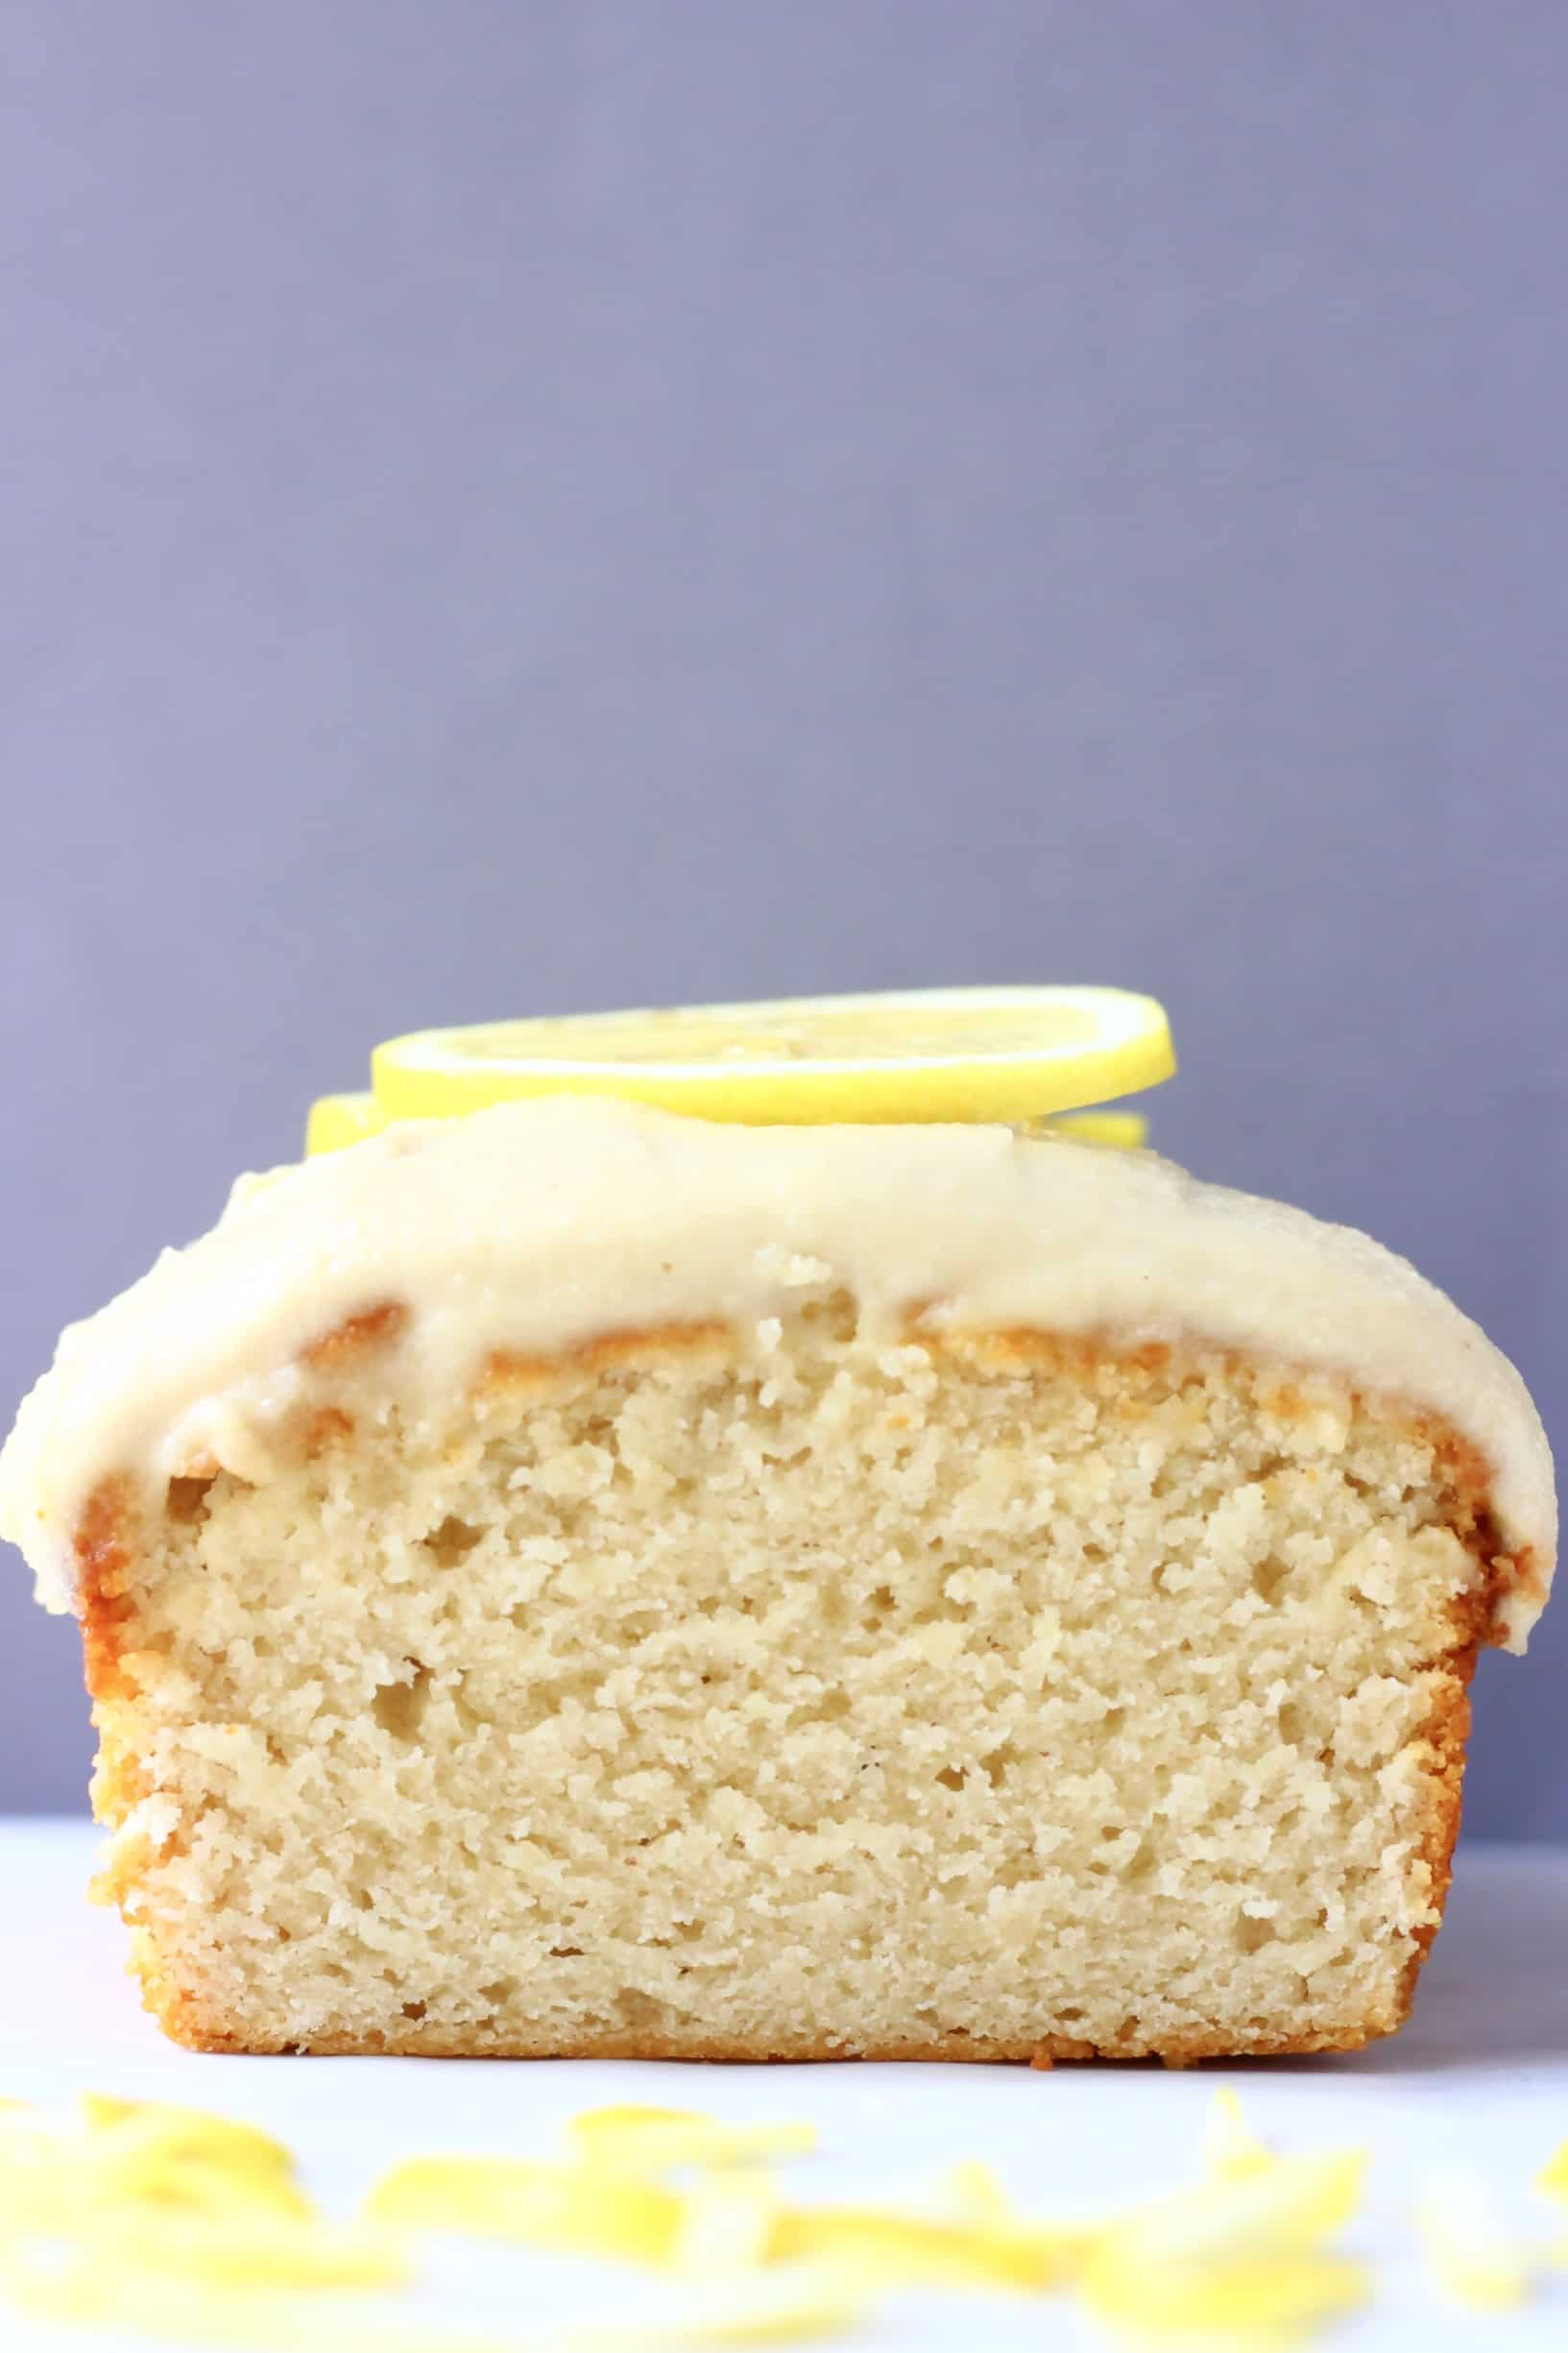 A sliced loaf of gluten-free vegan lemon bread topped with frosting and lemon slices